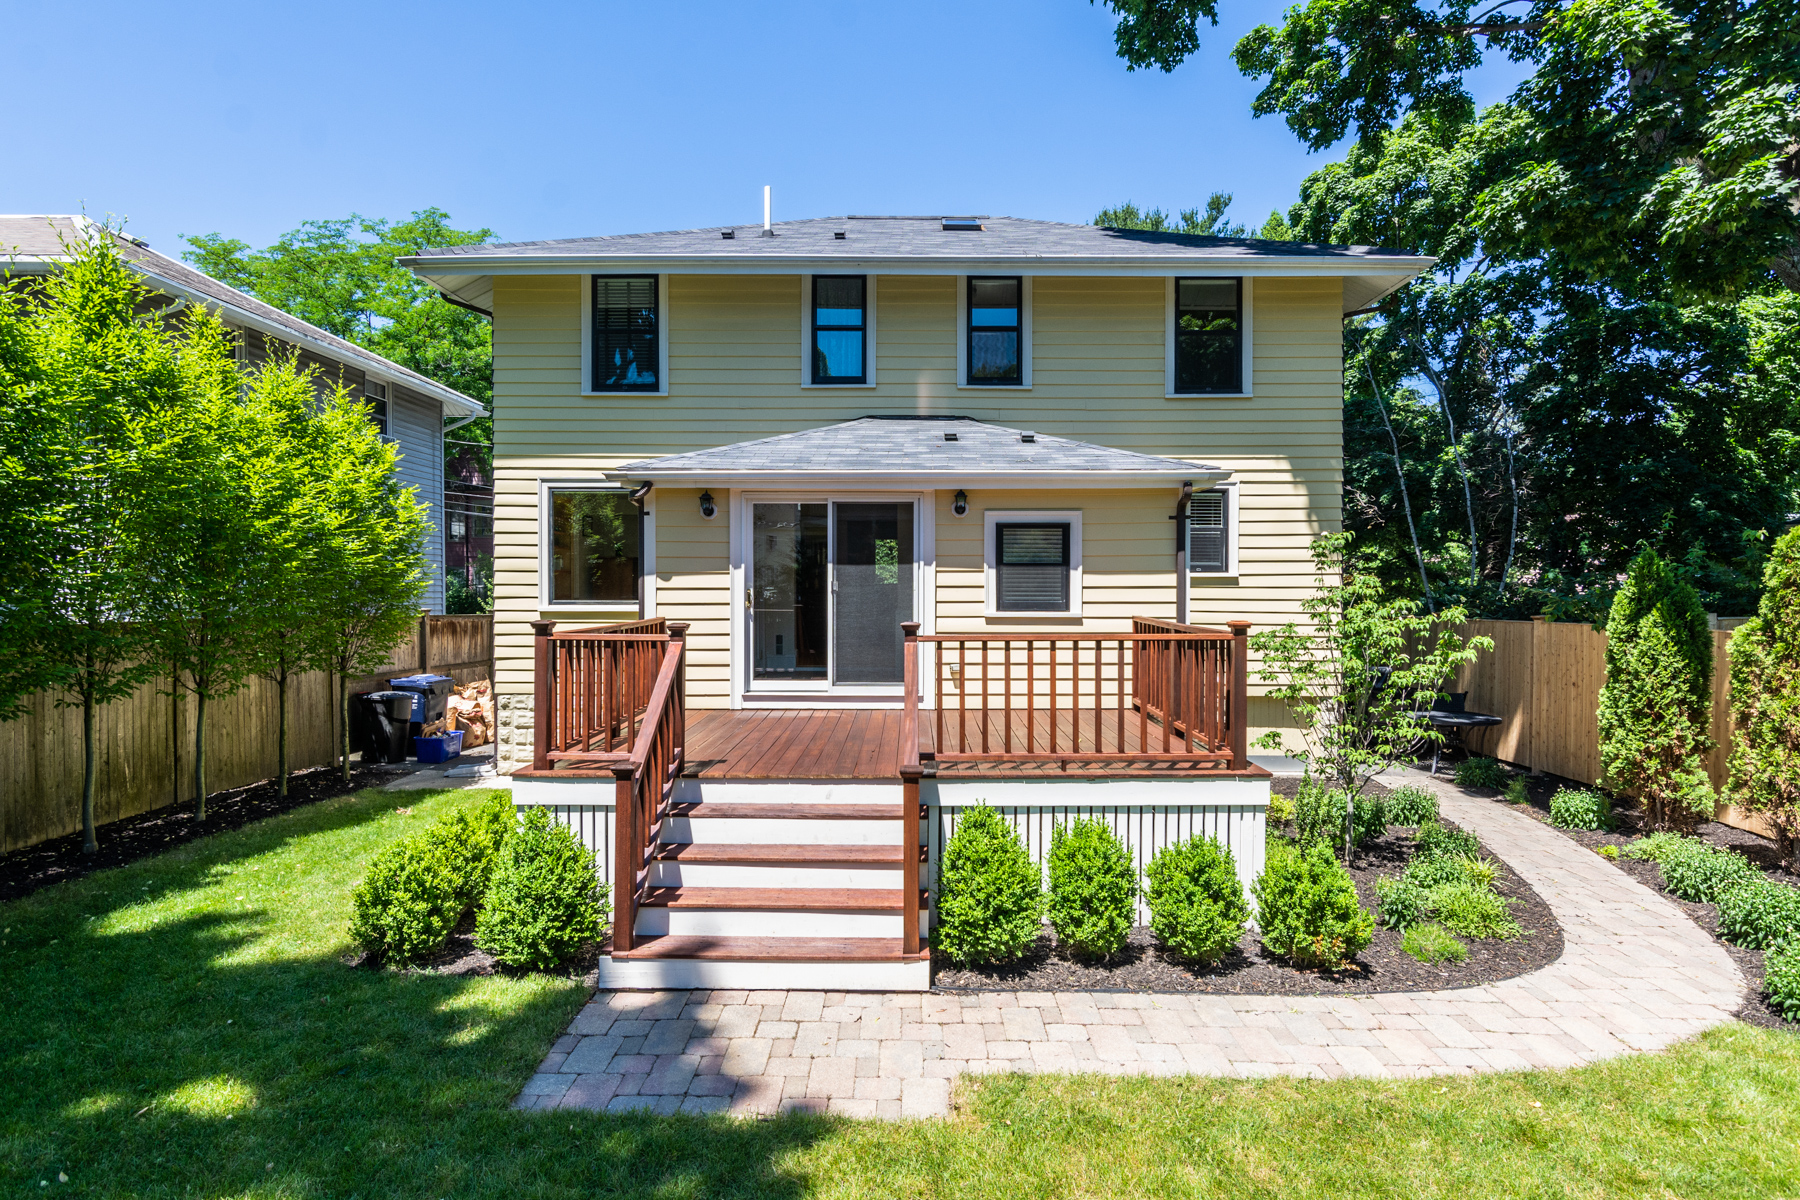 Ten noteworthy sales in Cambridge, Massachusetts in Q3 2018.